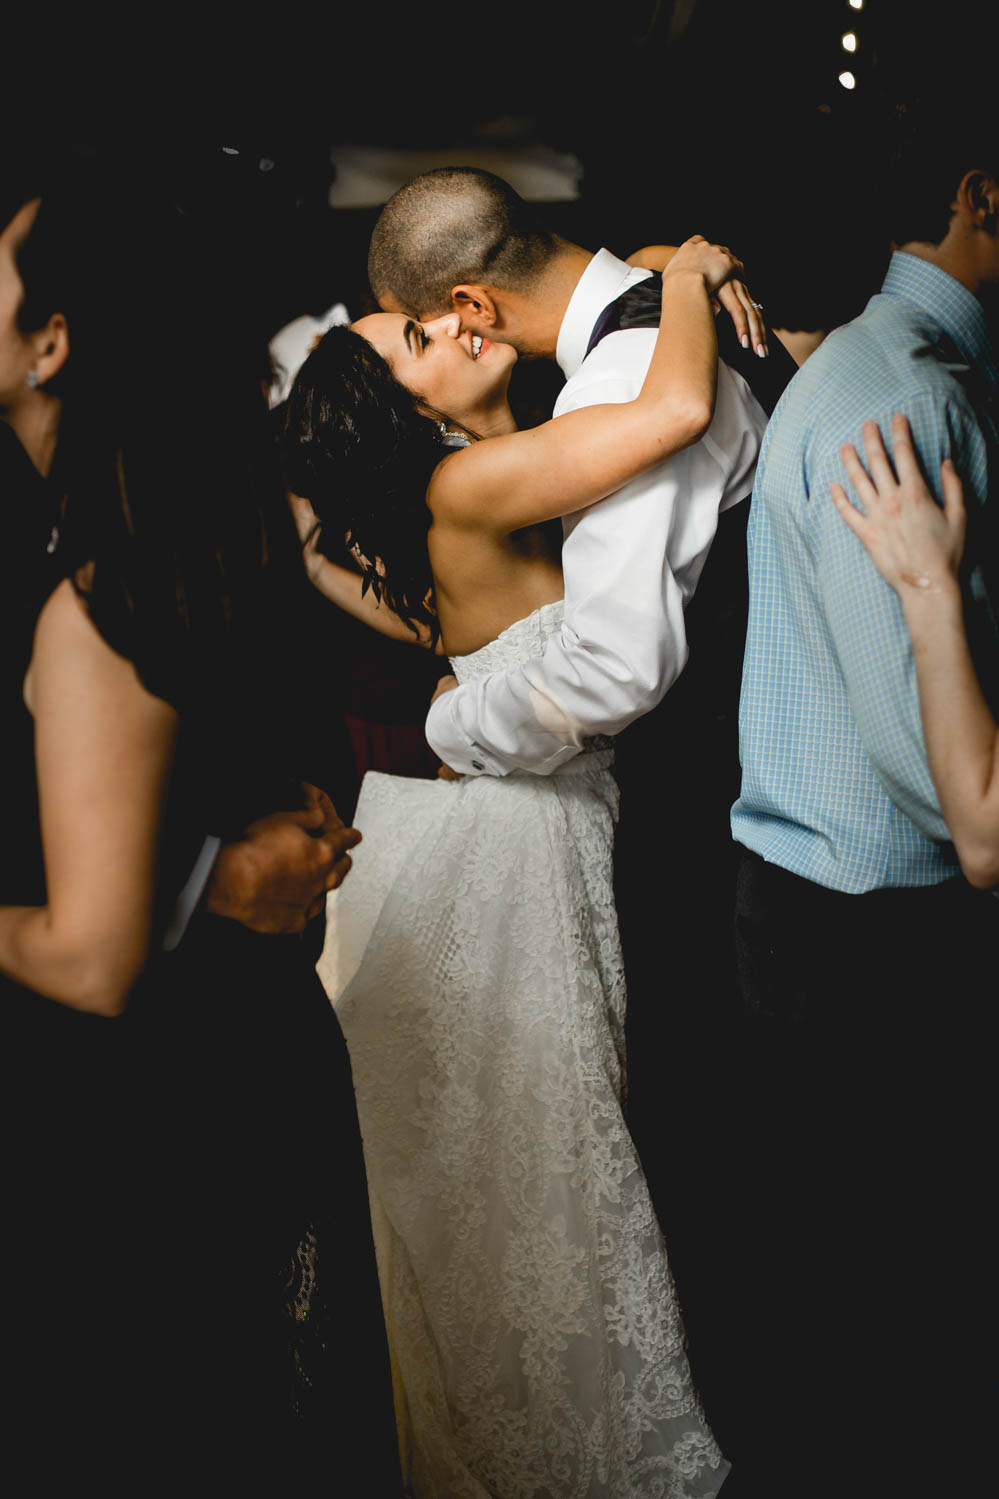 cute-bride-and-groom-dancing-photo.jpg